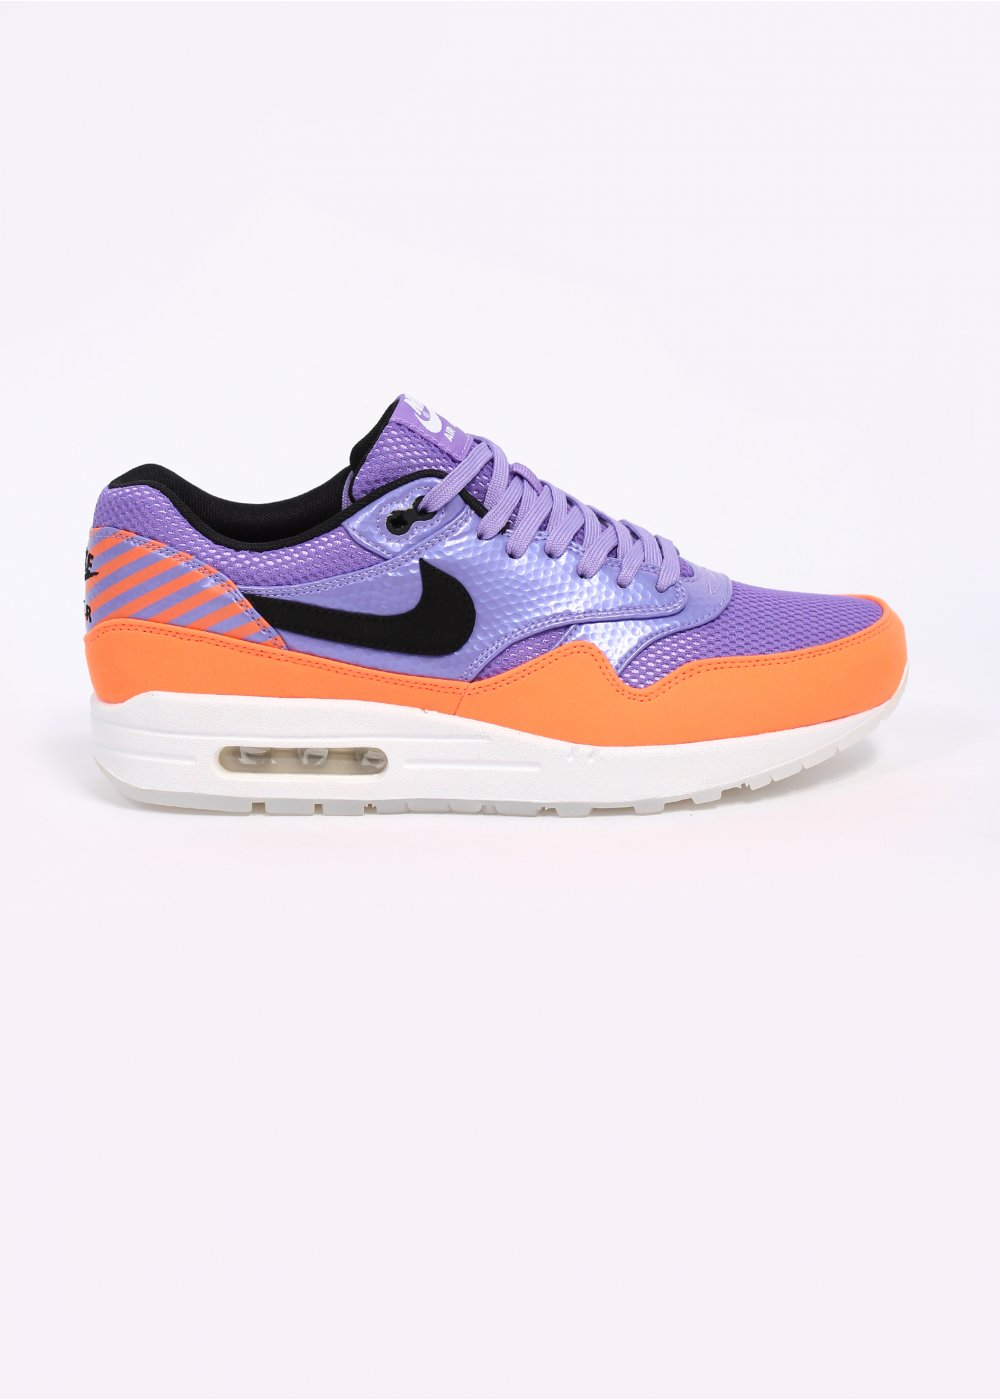 Nike Quickstrike Air Max 1 FB Premium Mercurial QS Trainers Atomic Violet Black Total Orange